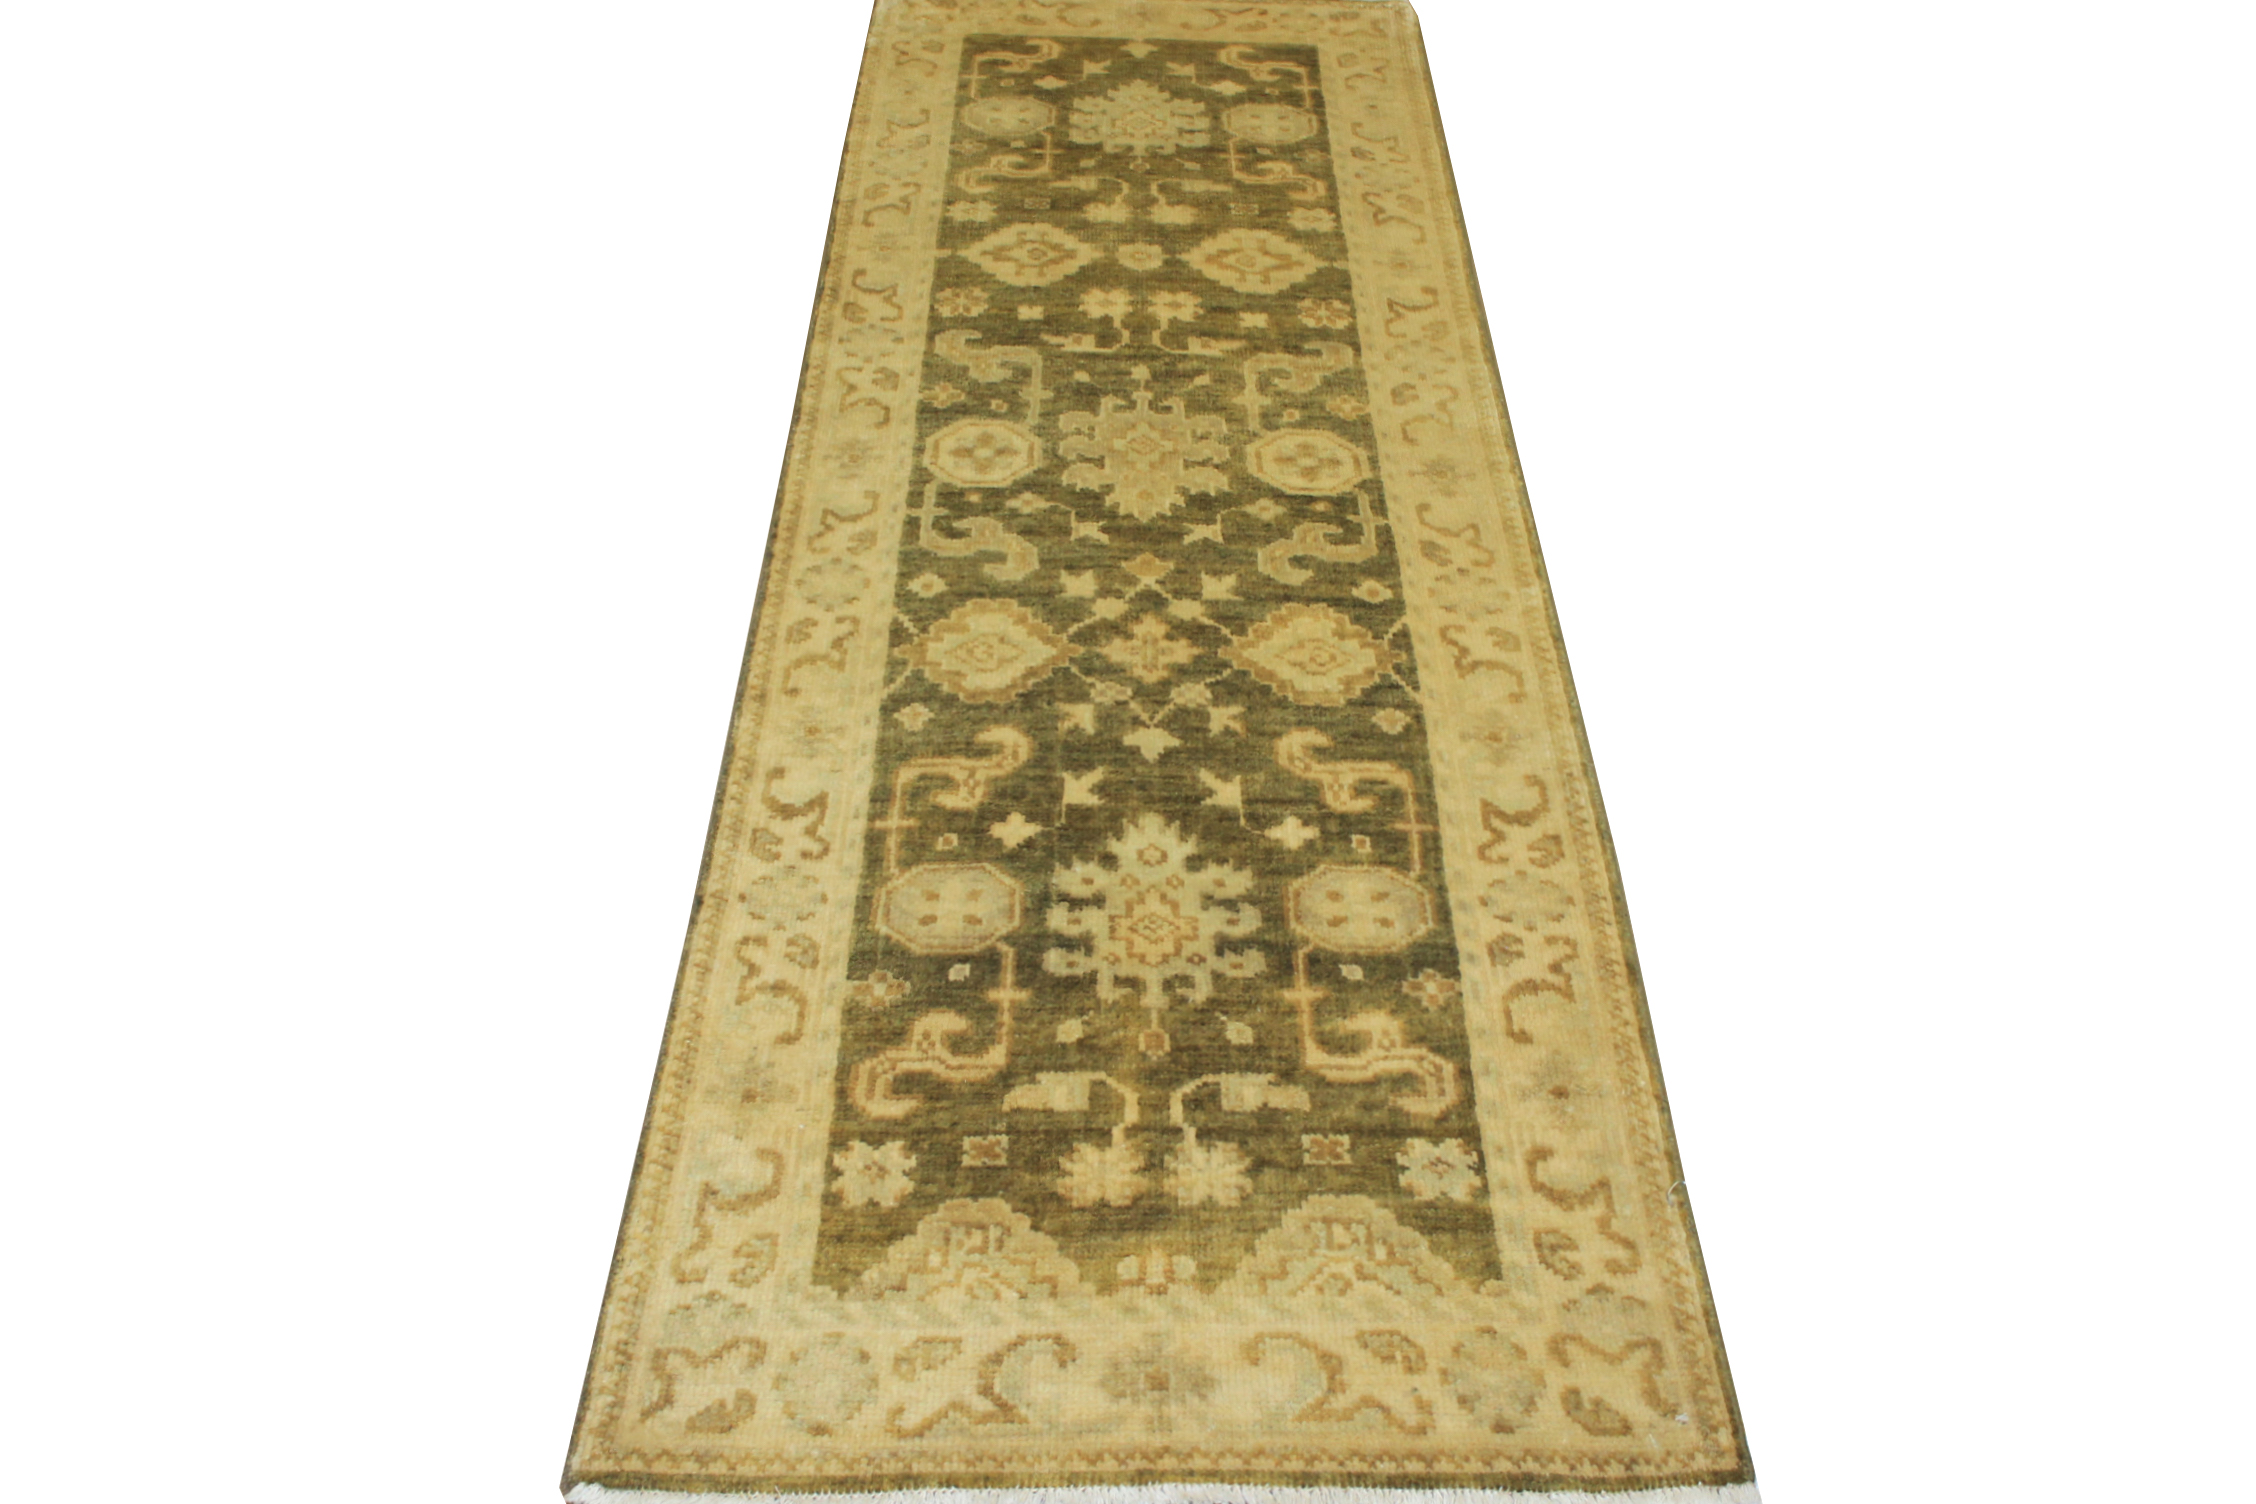 8 ft. Runner Oushak Hand Knotted Wool Area Rug - MR13823